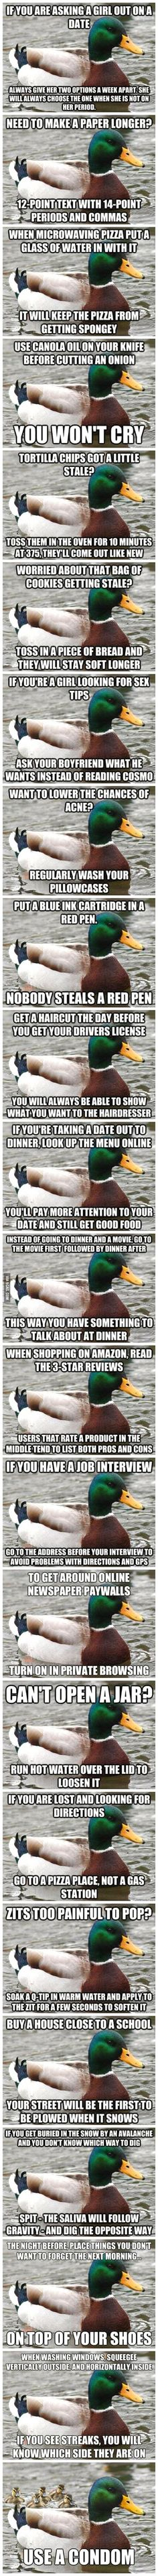 Bringing Actual Advice Mallard back to its roots - 9GAG